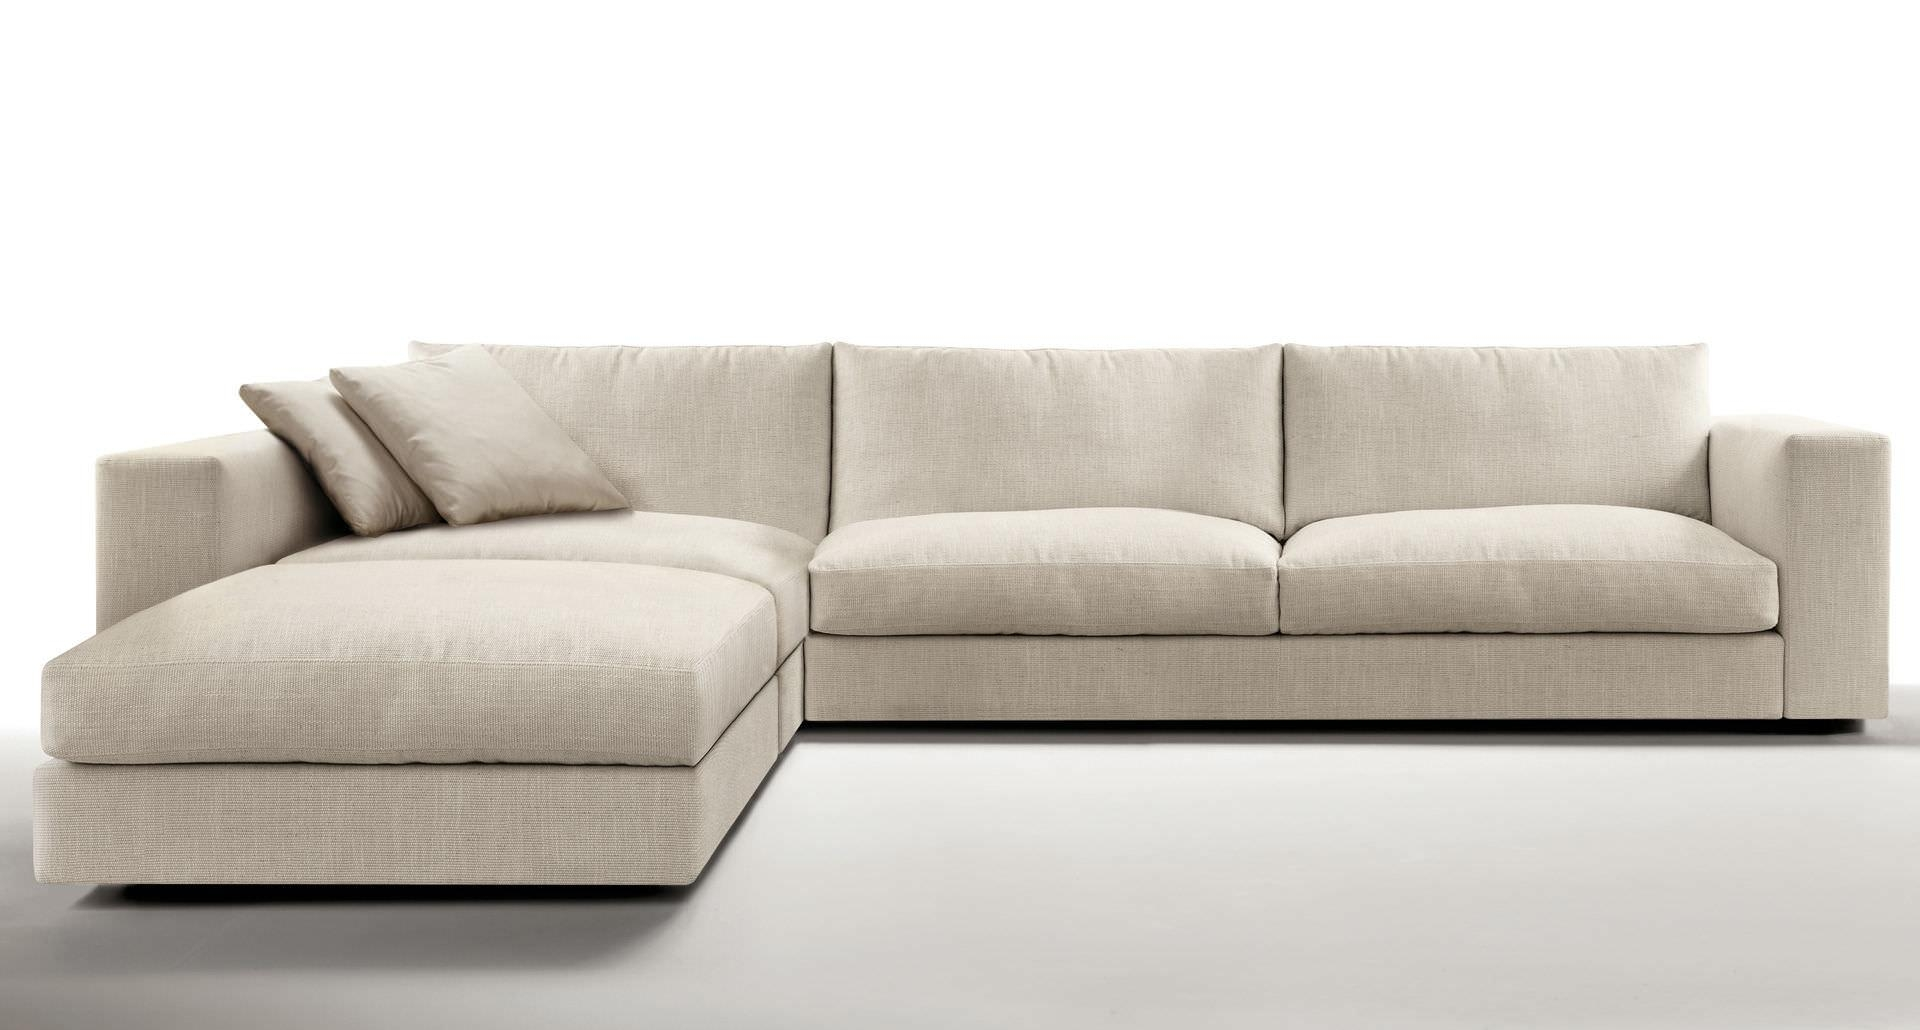 Corner Couches For Sale Affordable Corner Sofas Interesting Two Tone Sectional